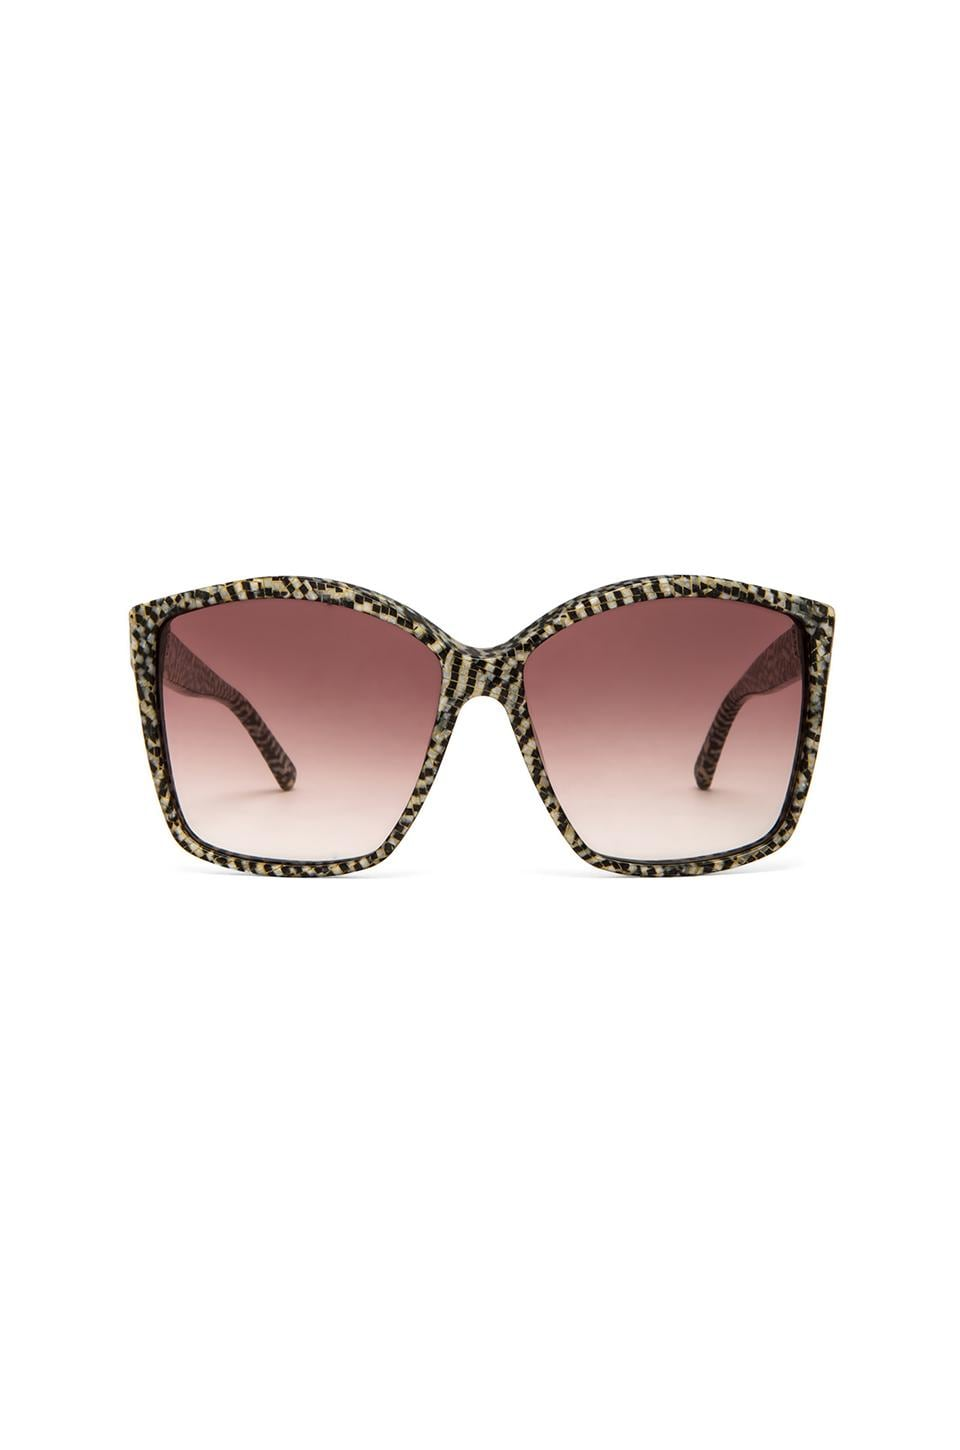 House of Harlow Jordana Sunglasses in Mosaic